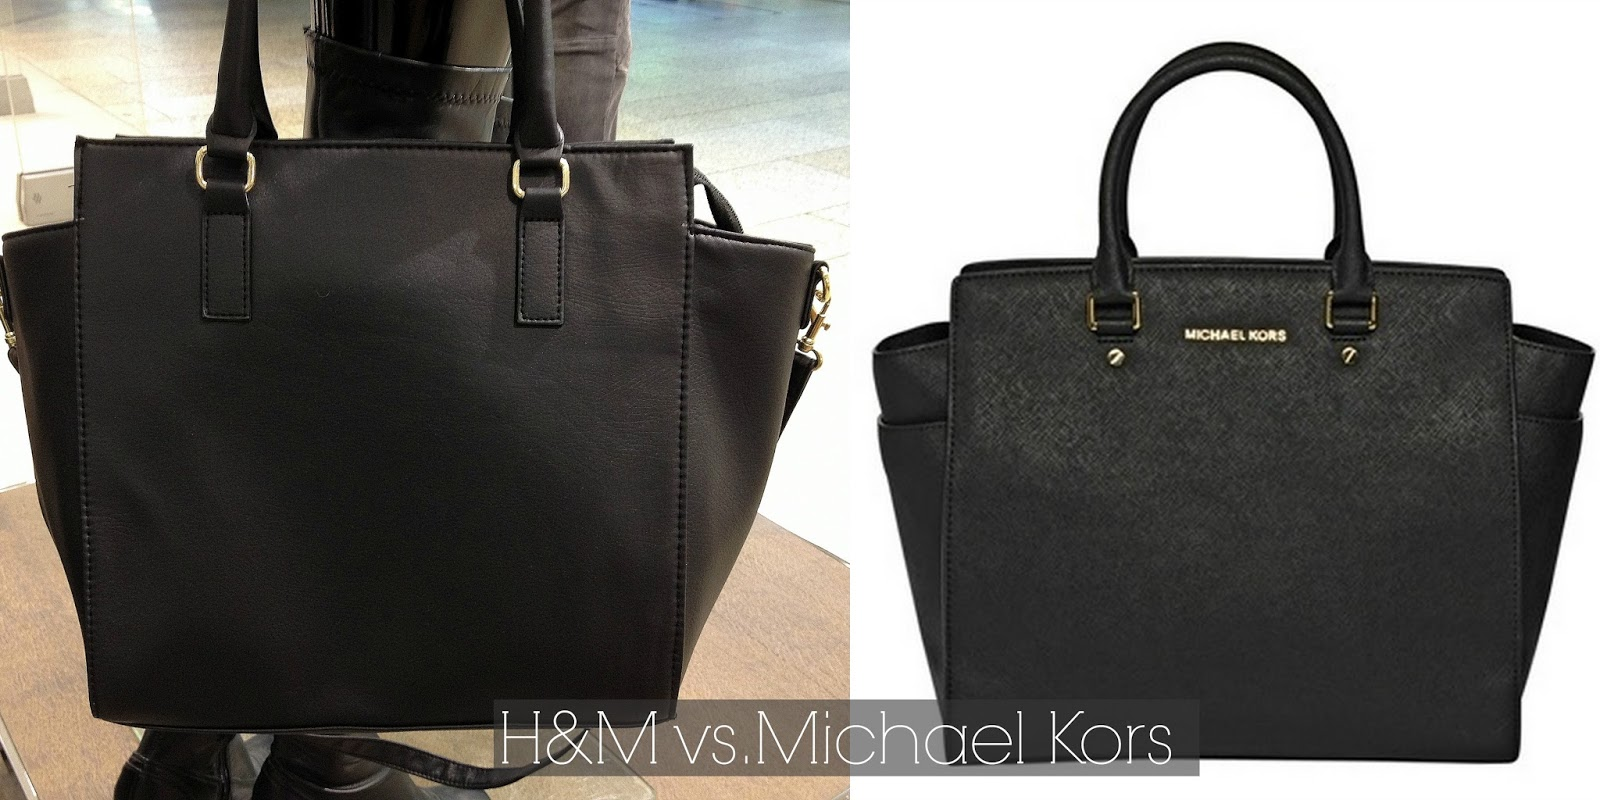 michael kors tasche outlet michael kors tasche outlet michael michael kors tasche hamilton. Black Bedroom Furniture Sets. Home Design Ideas